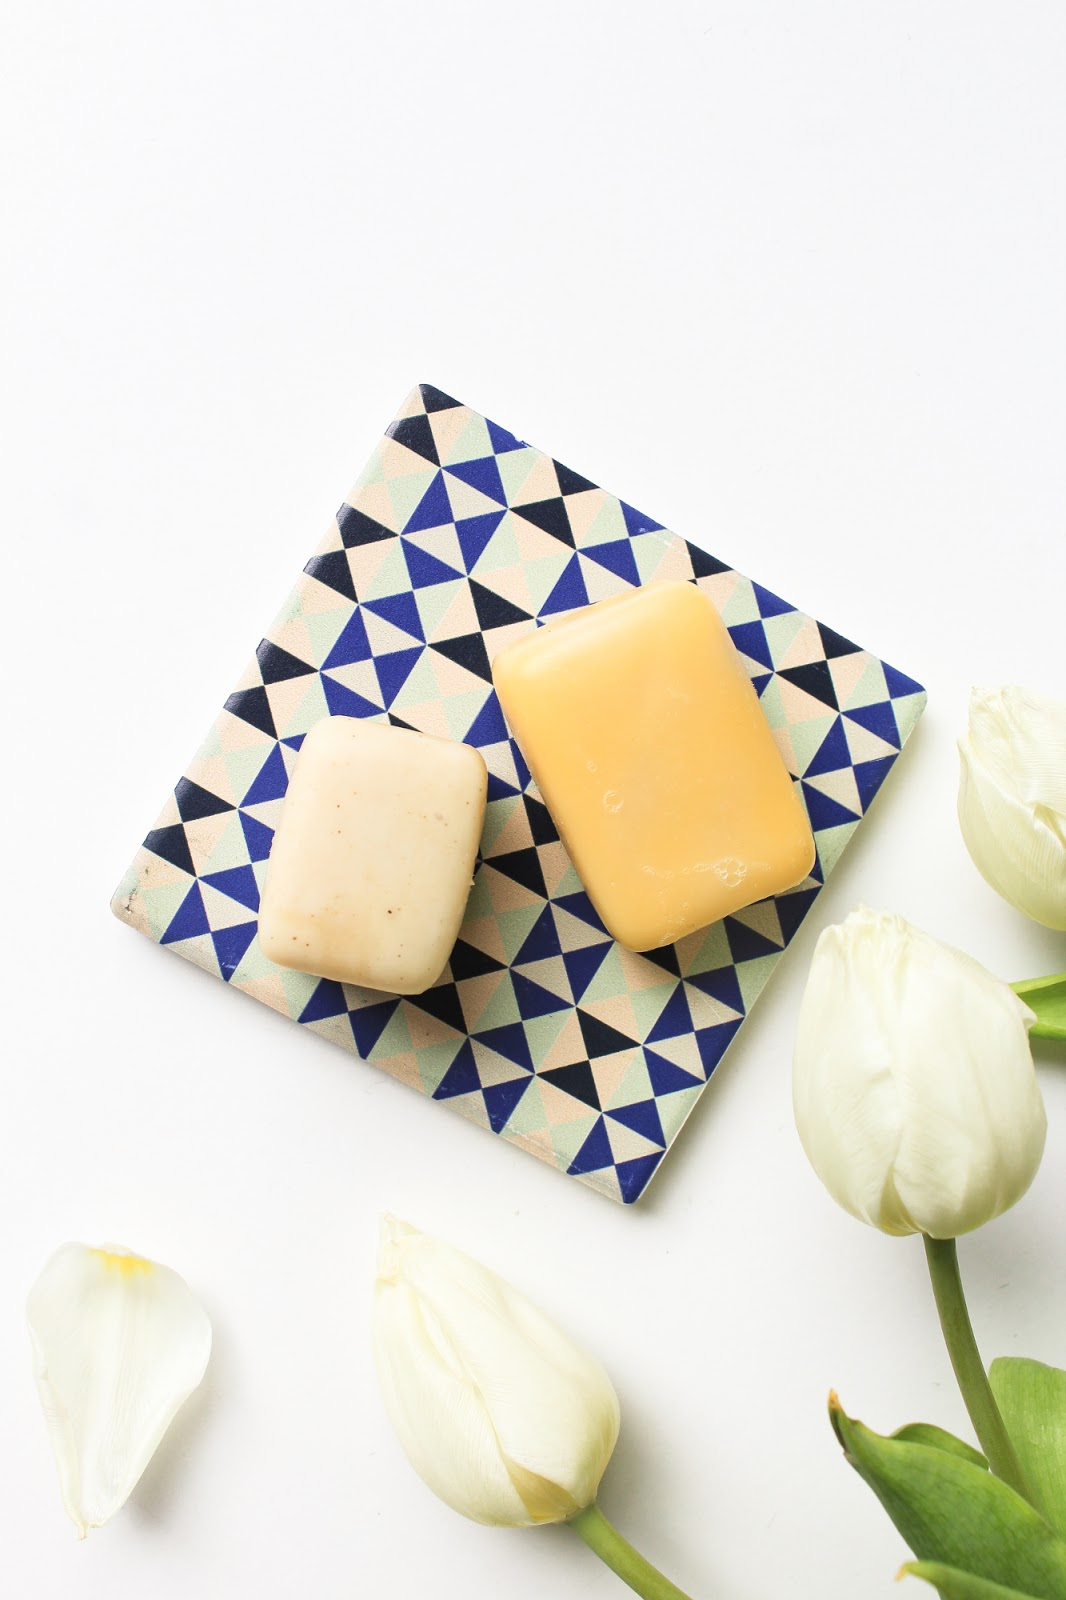 Rachel's Plan Bee Facial Cleansing Bar, Carrot & Calendula Soap Bar